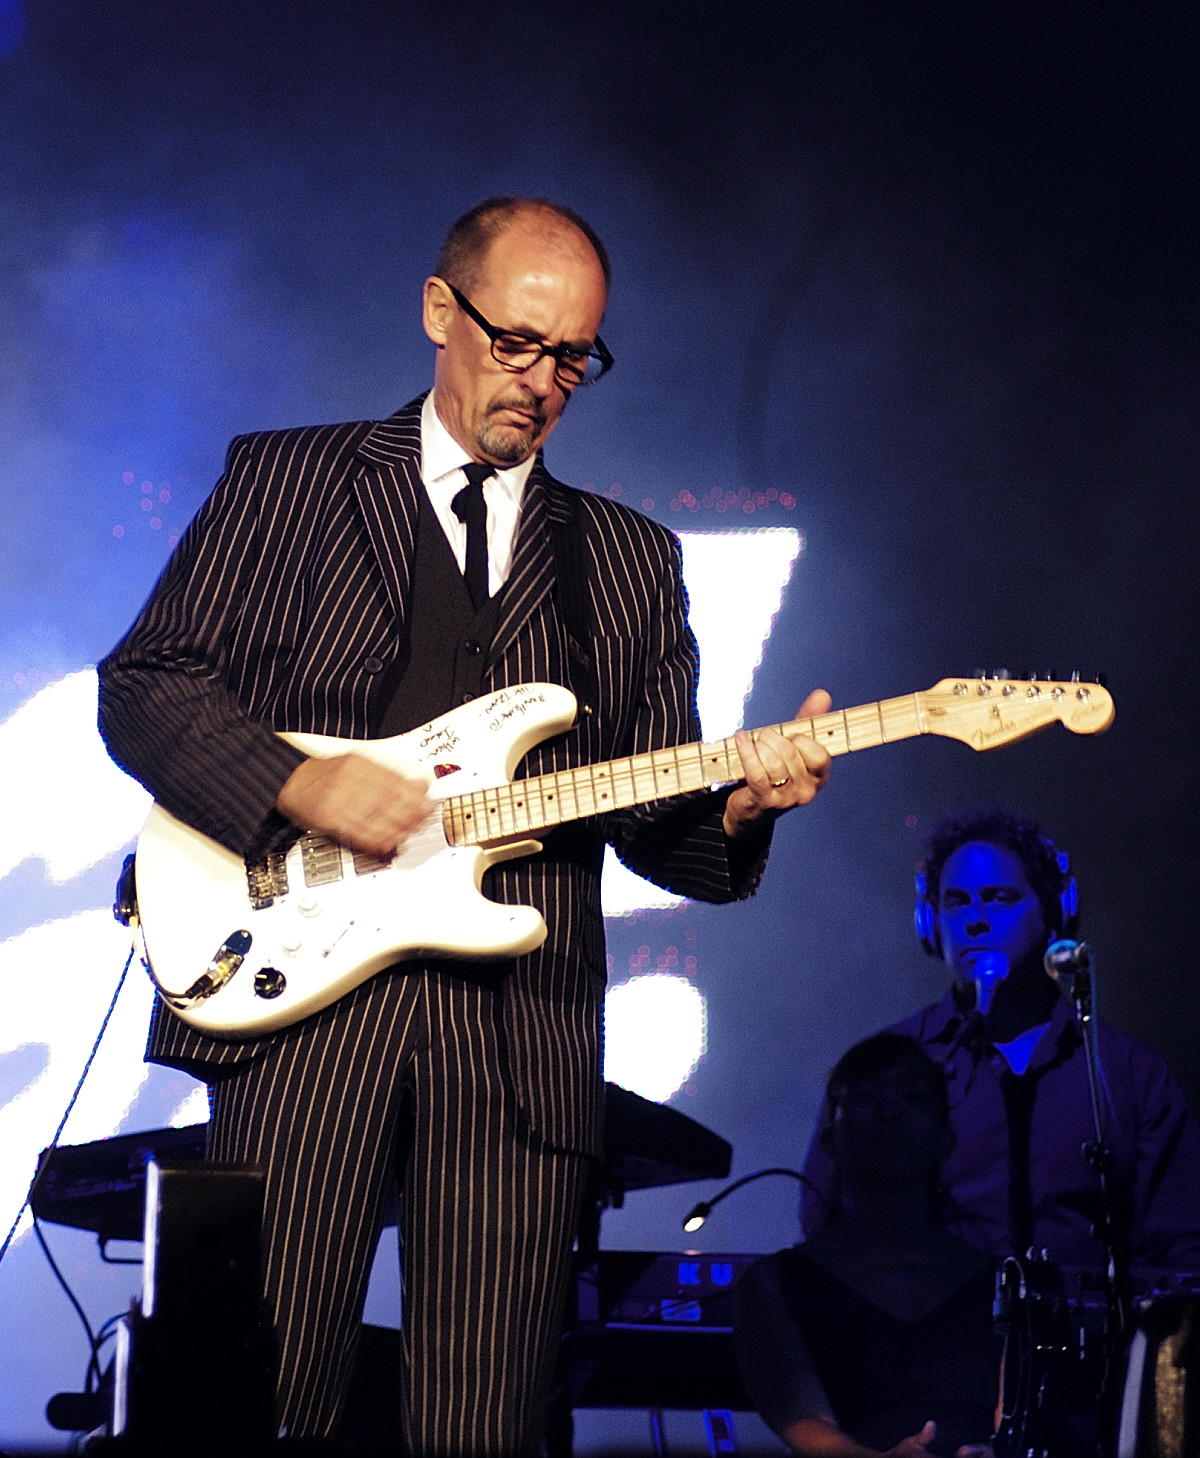 Andy Fairweather Low - Wikipedia